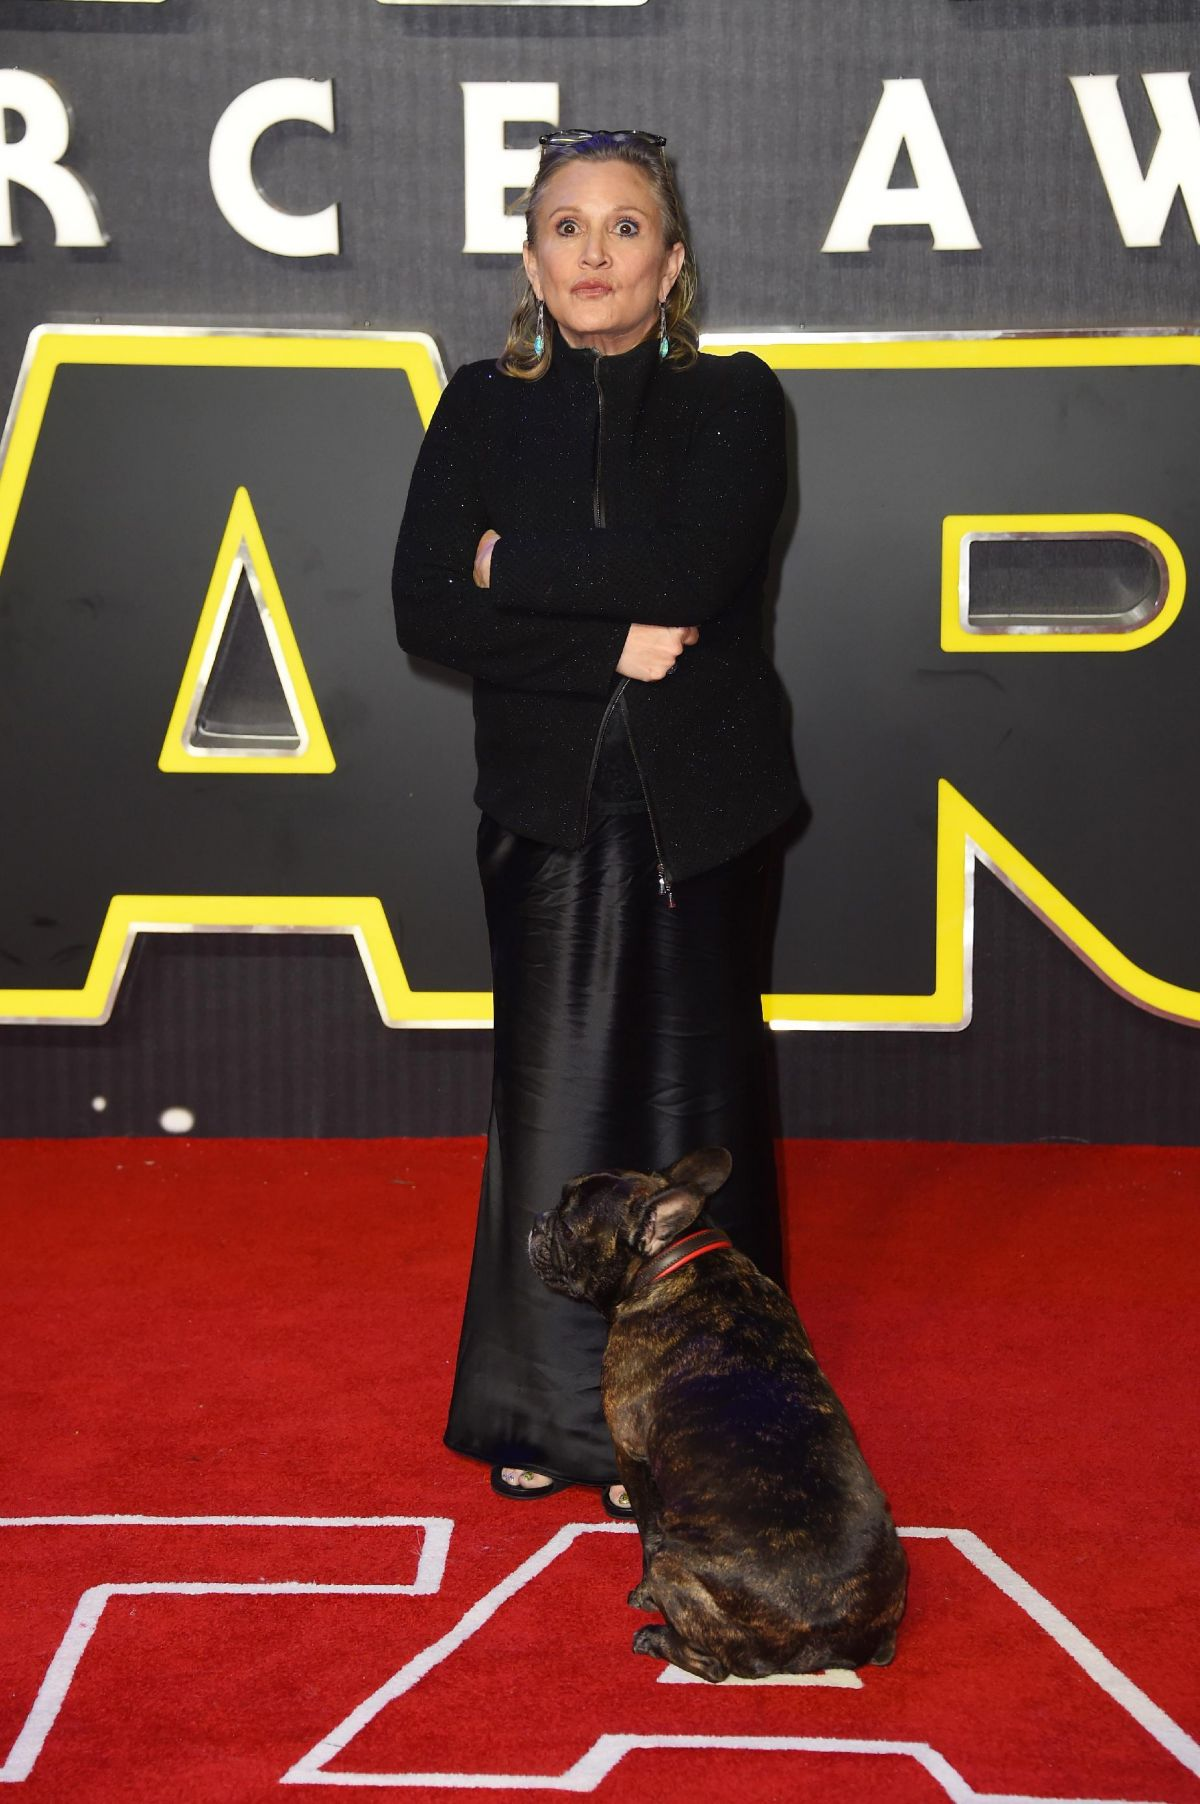 CARRIE FISHER at Star Wars: The Force Awakens Premiere in London 12/16/2015